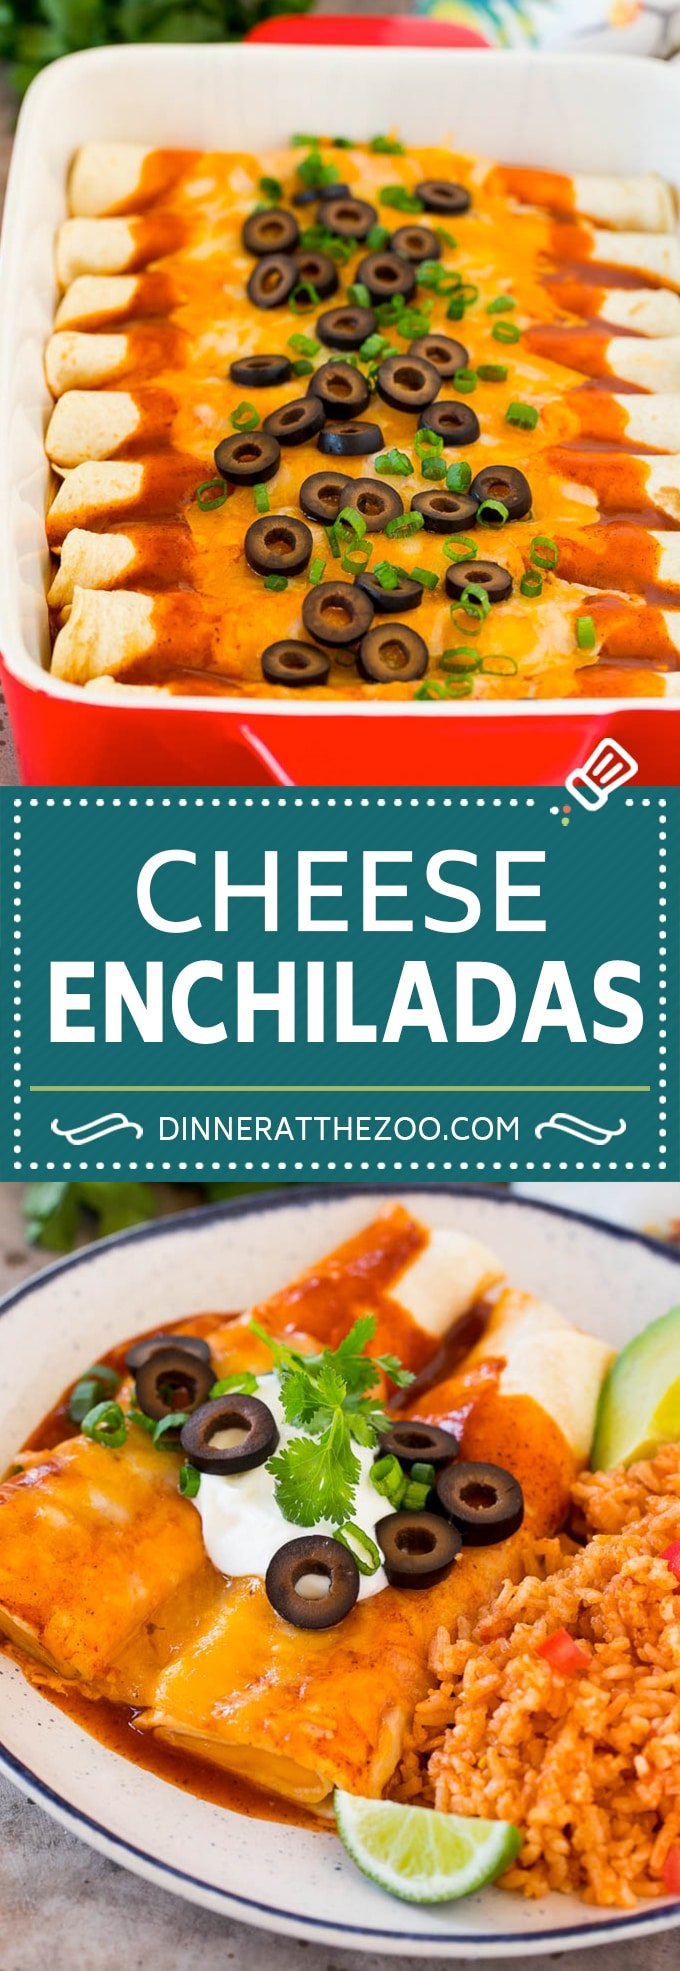 This recipe for cheese enchiladas is rolled flour tortillas filled with cheddar and Monterey Jack cheeses, then topped with red sauce and more cheese and baked to golden brown perfection.